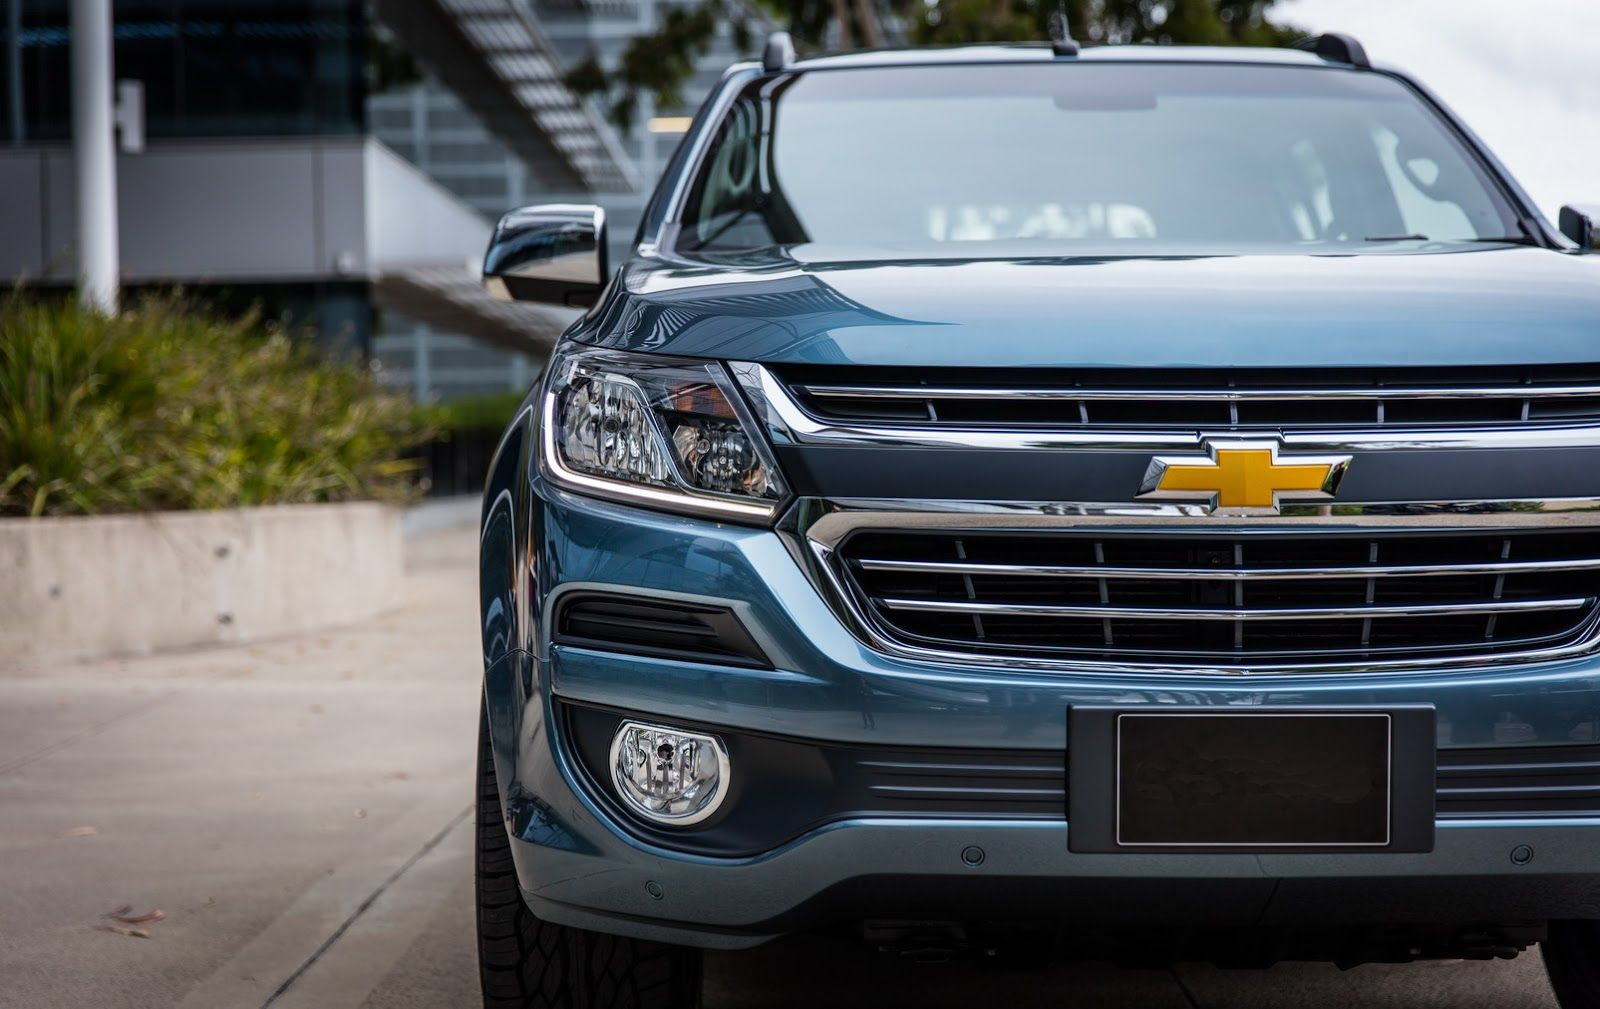 Chevy 2012 chevy trailblazer : Blazer » 2012 Chevy Trailblazer - Old Chevy Photos Collection, All ...